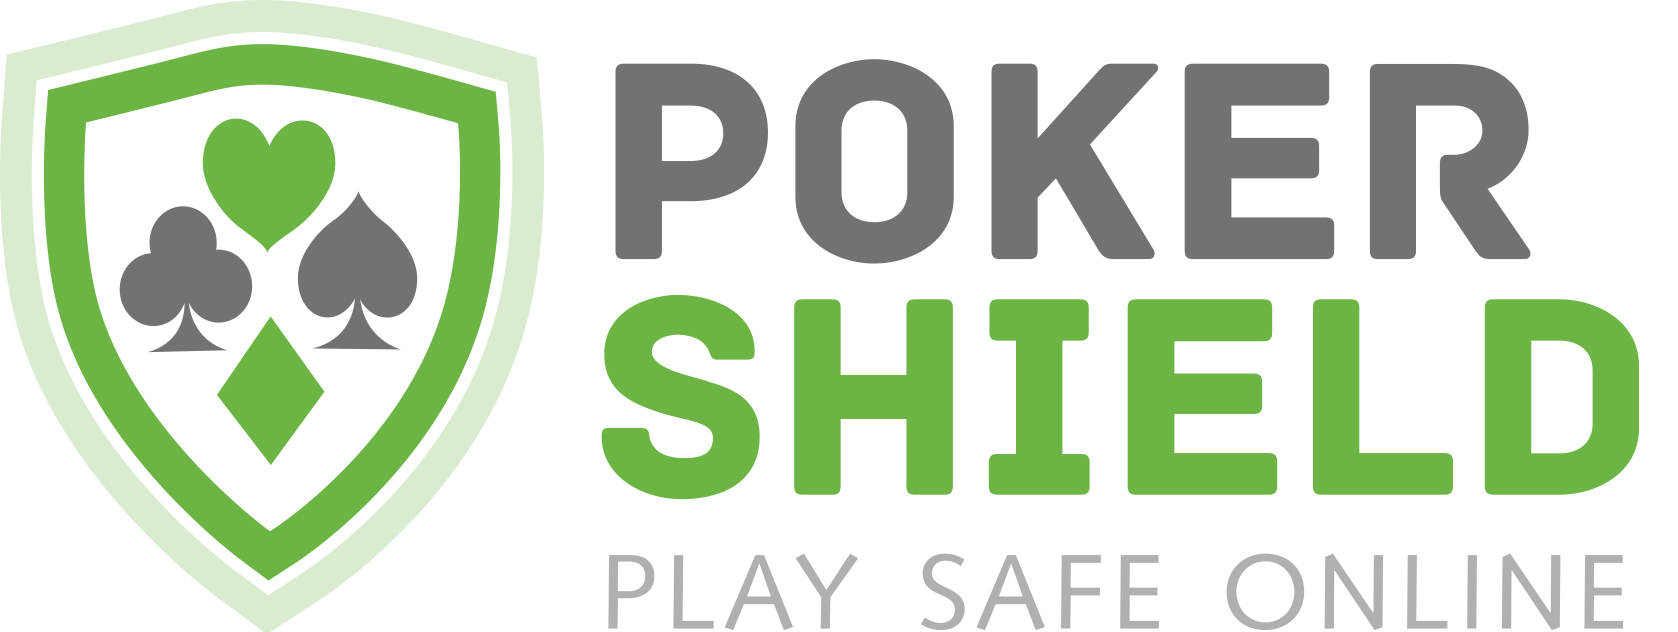 Poker Shield logo